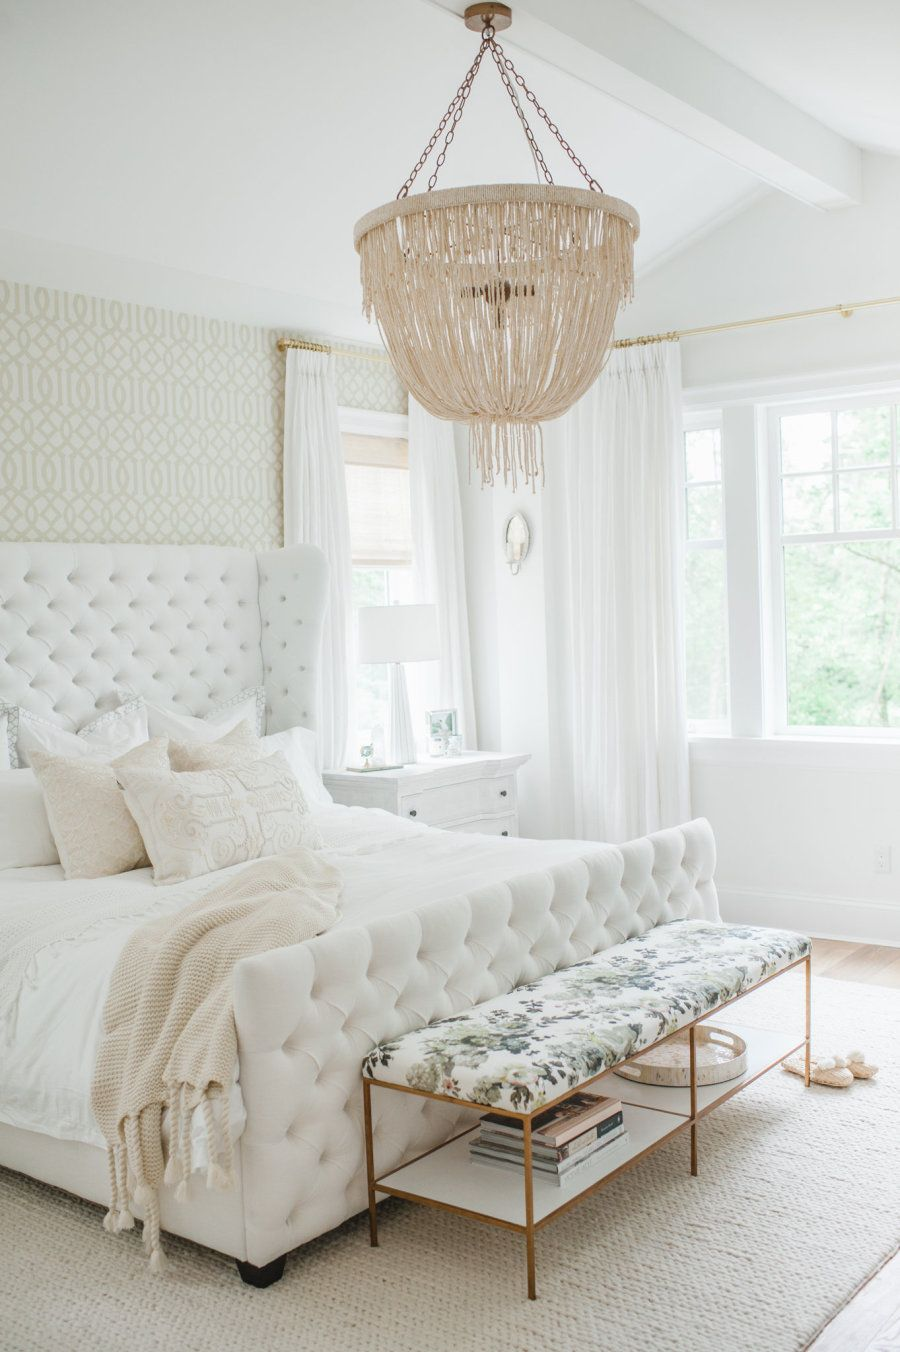 The Dreamiest White Bedroom You Will Ever Meet | Playroom